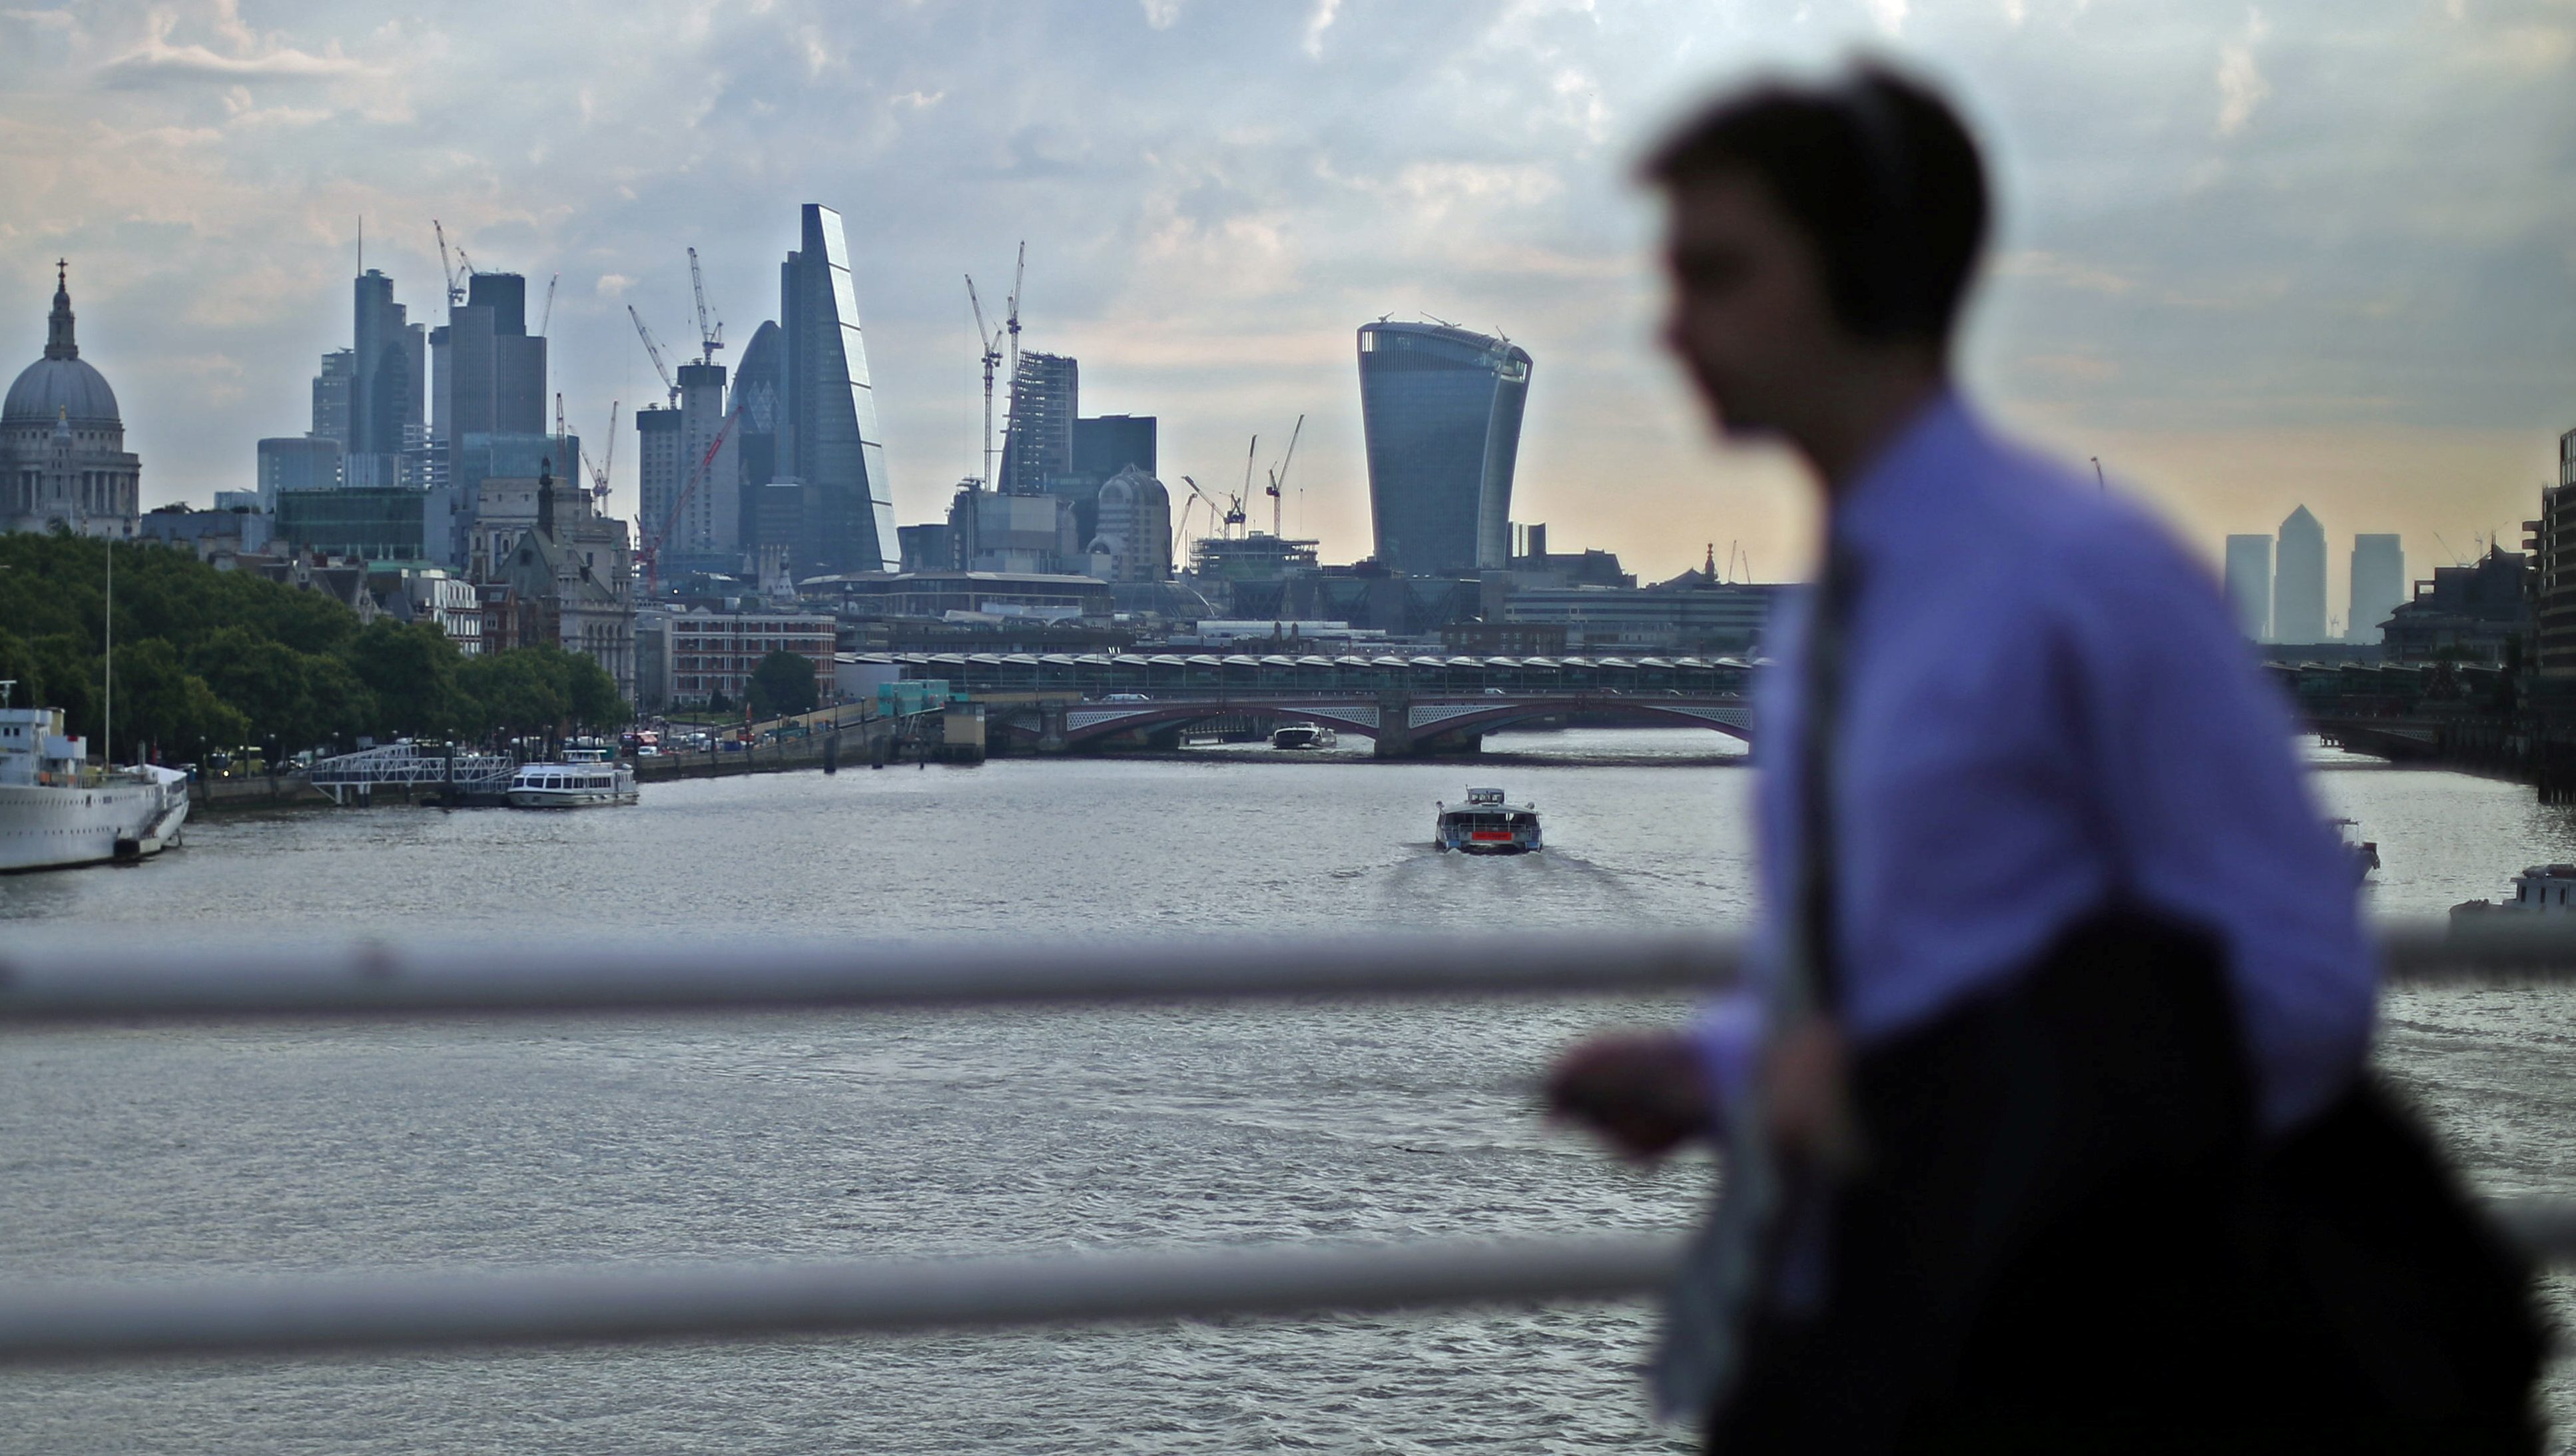 A commuter walks across Waterloo bridge during the morning rush hour in London,